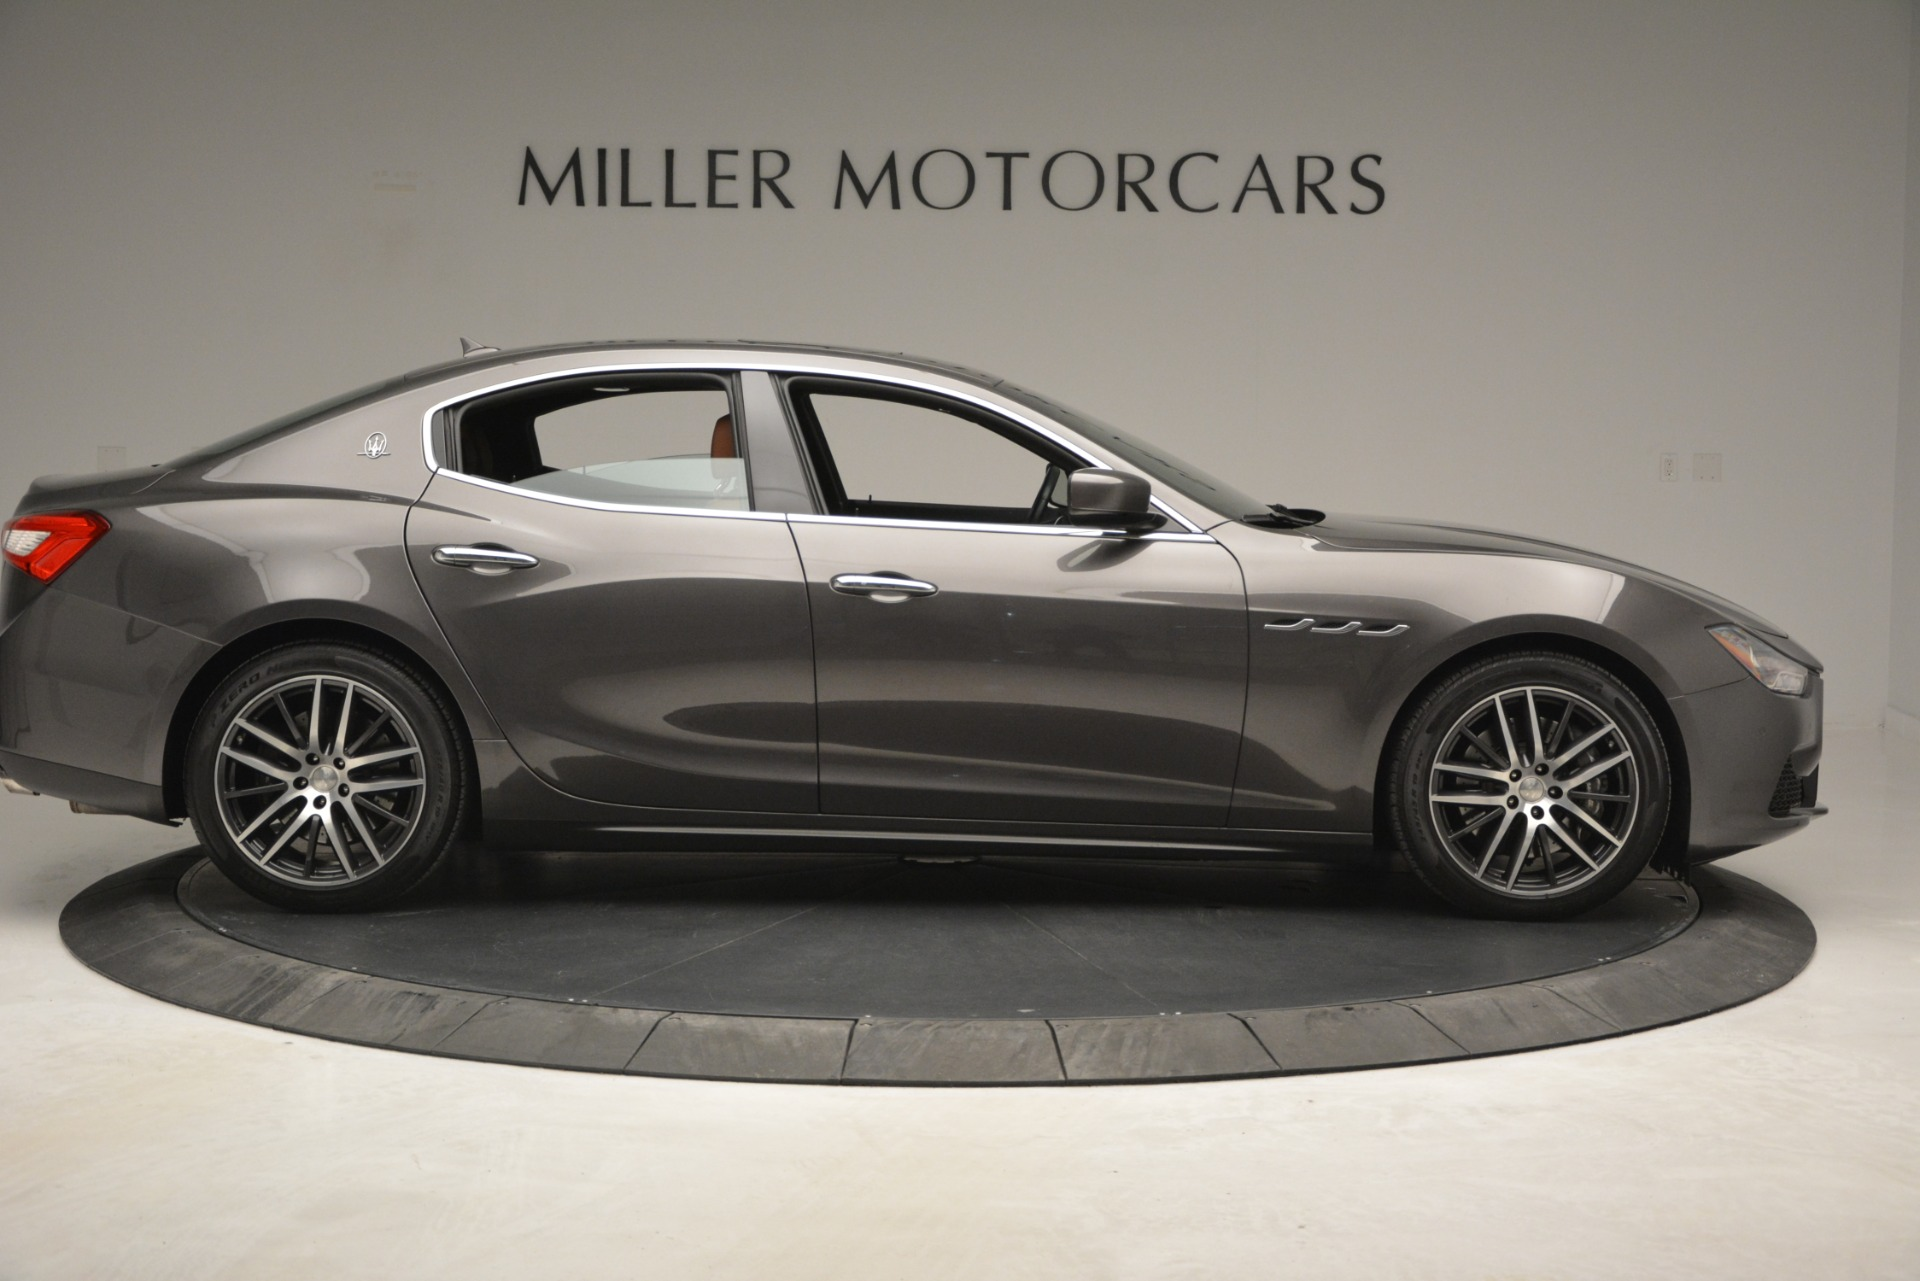 Used 2015 Maserati Ghibli S Q4 For Sale In Greenwich, CT. Alfa Romeo of Greenwich, 7483 2941_p10